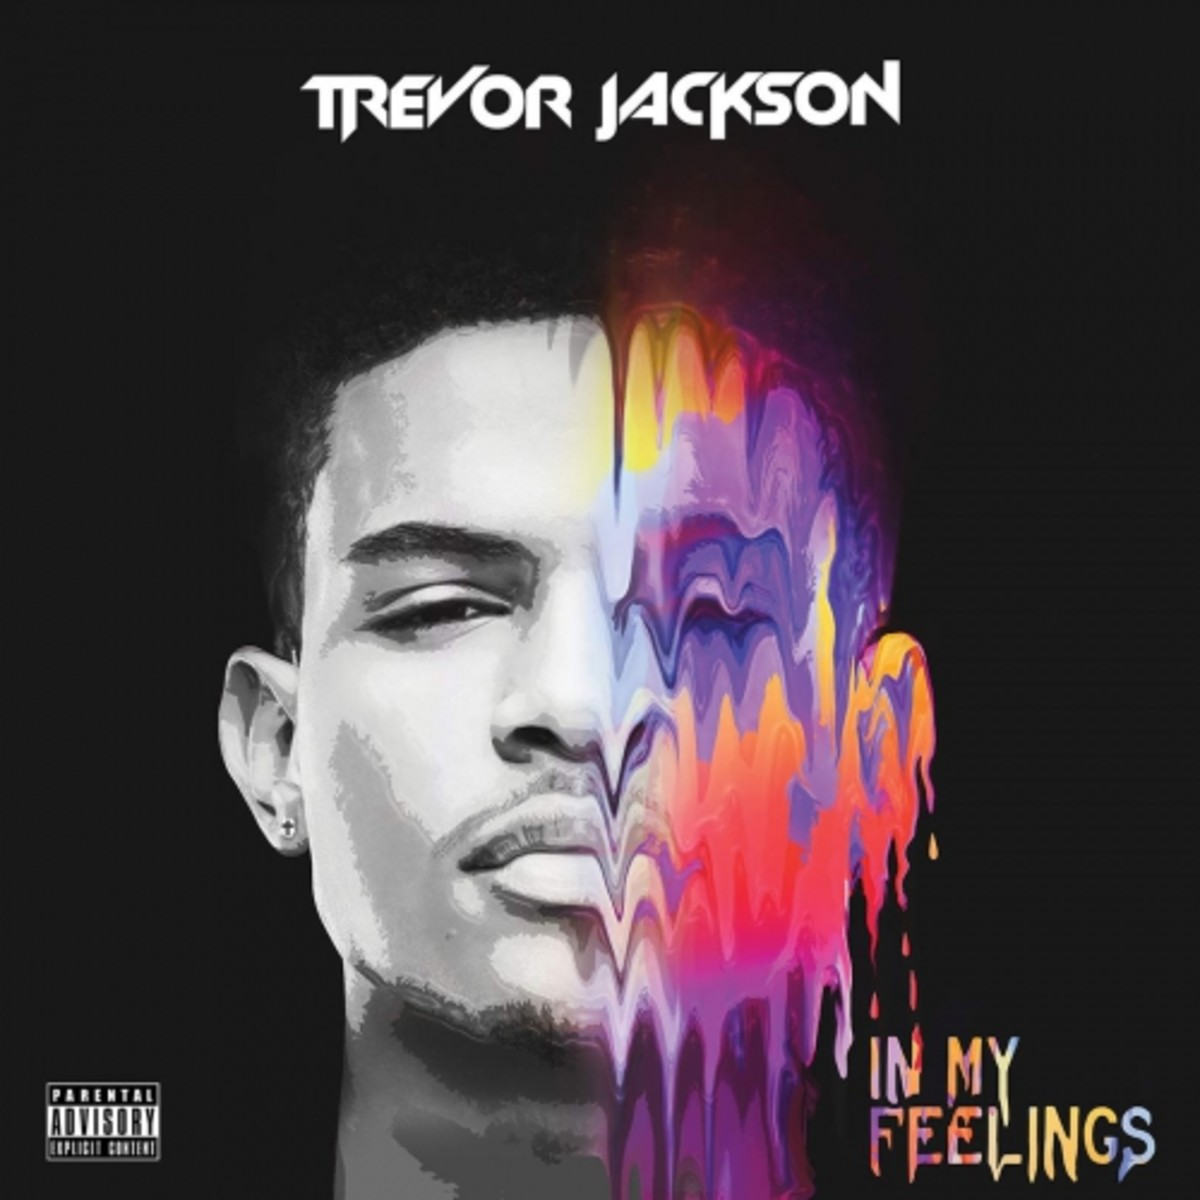 trevor-jackson-in-my-feelings.jpg